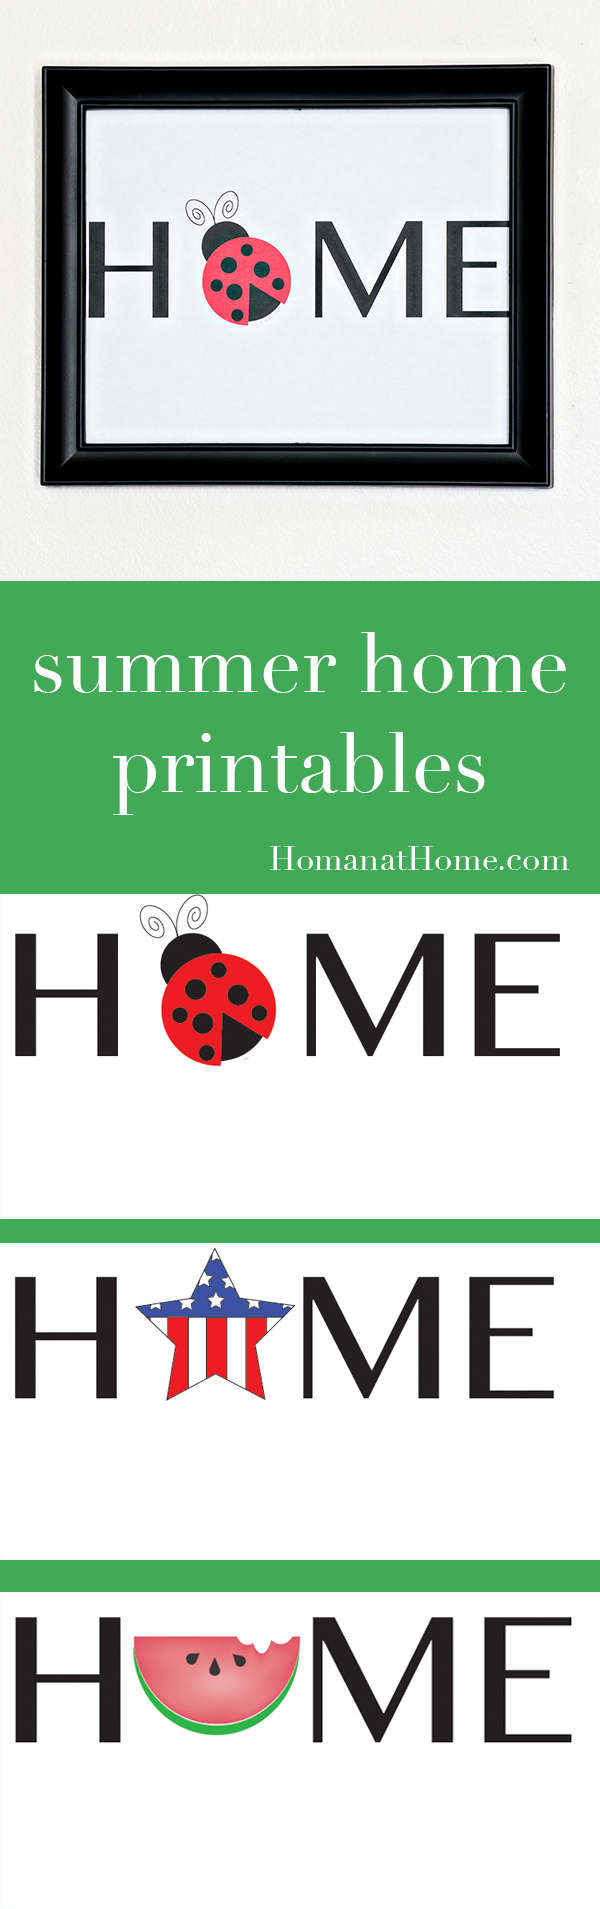 Summer Home Printables | Homan at Home